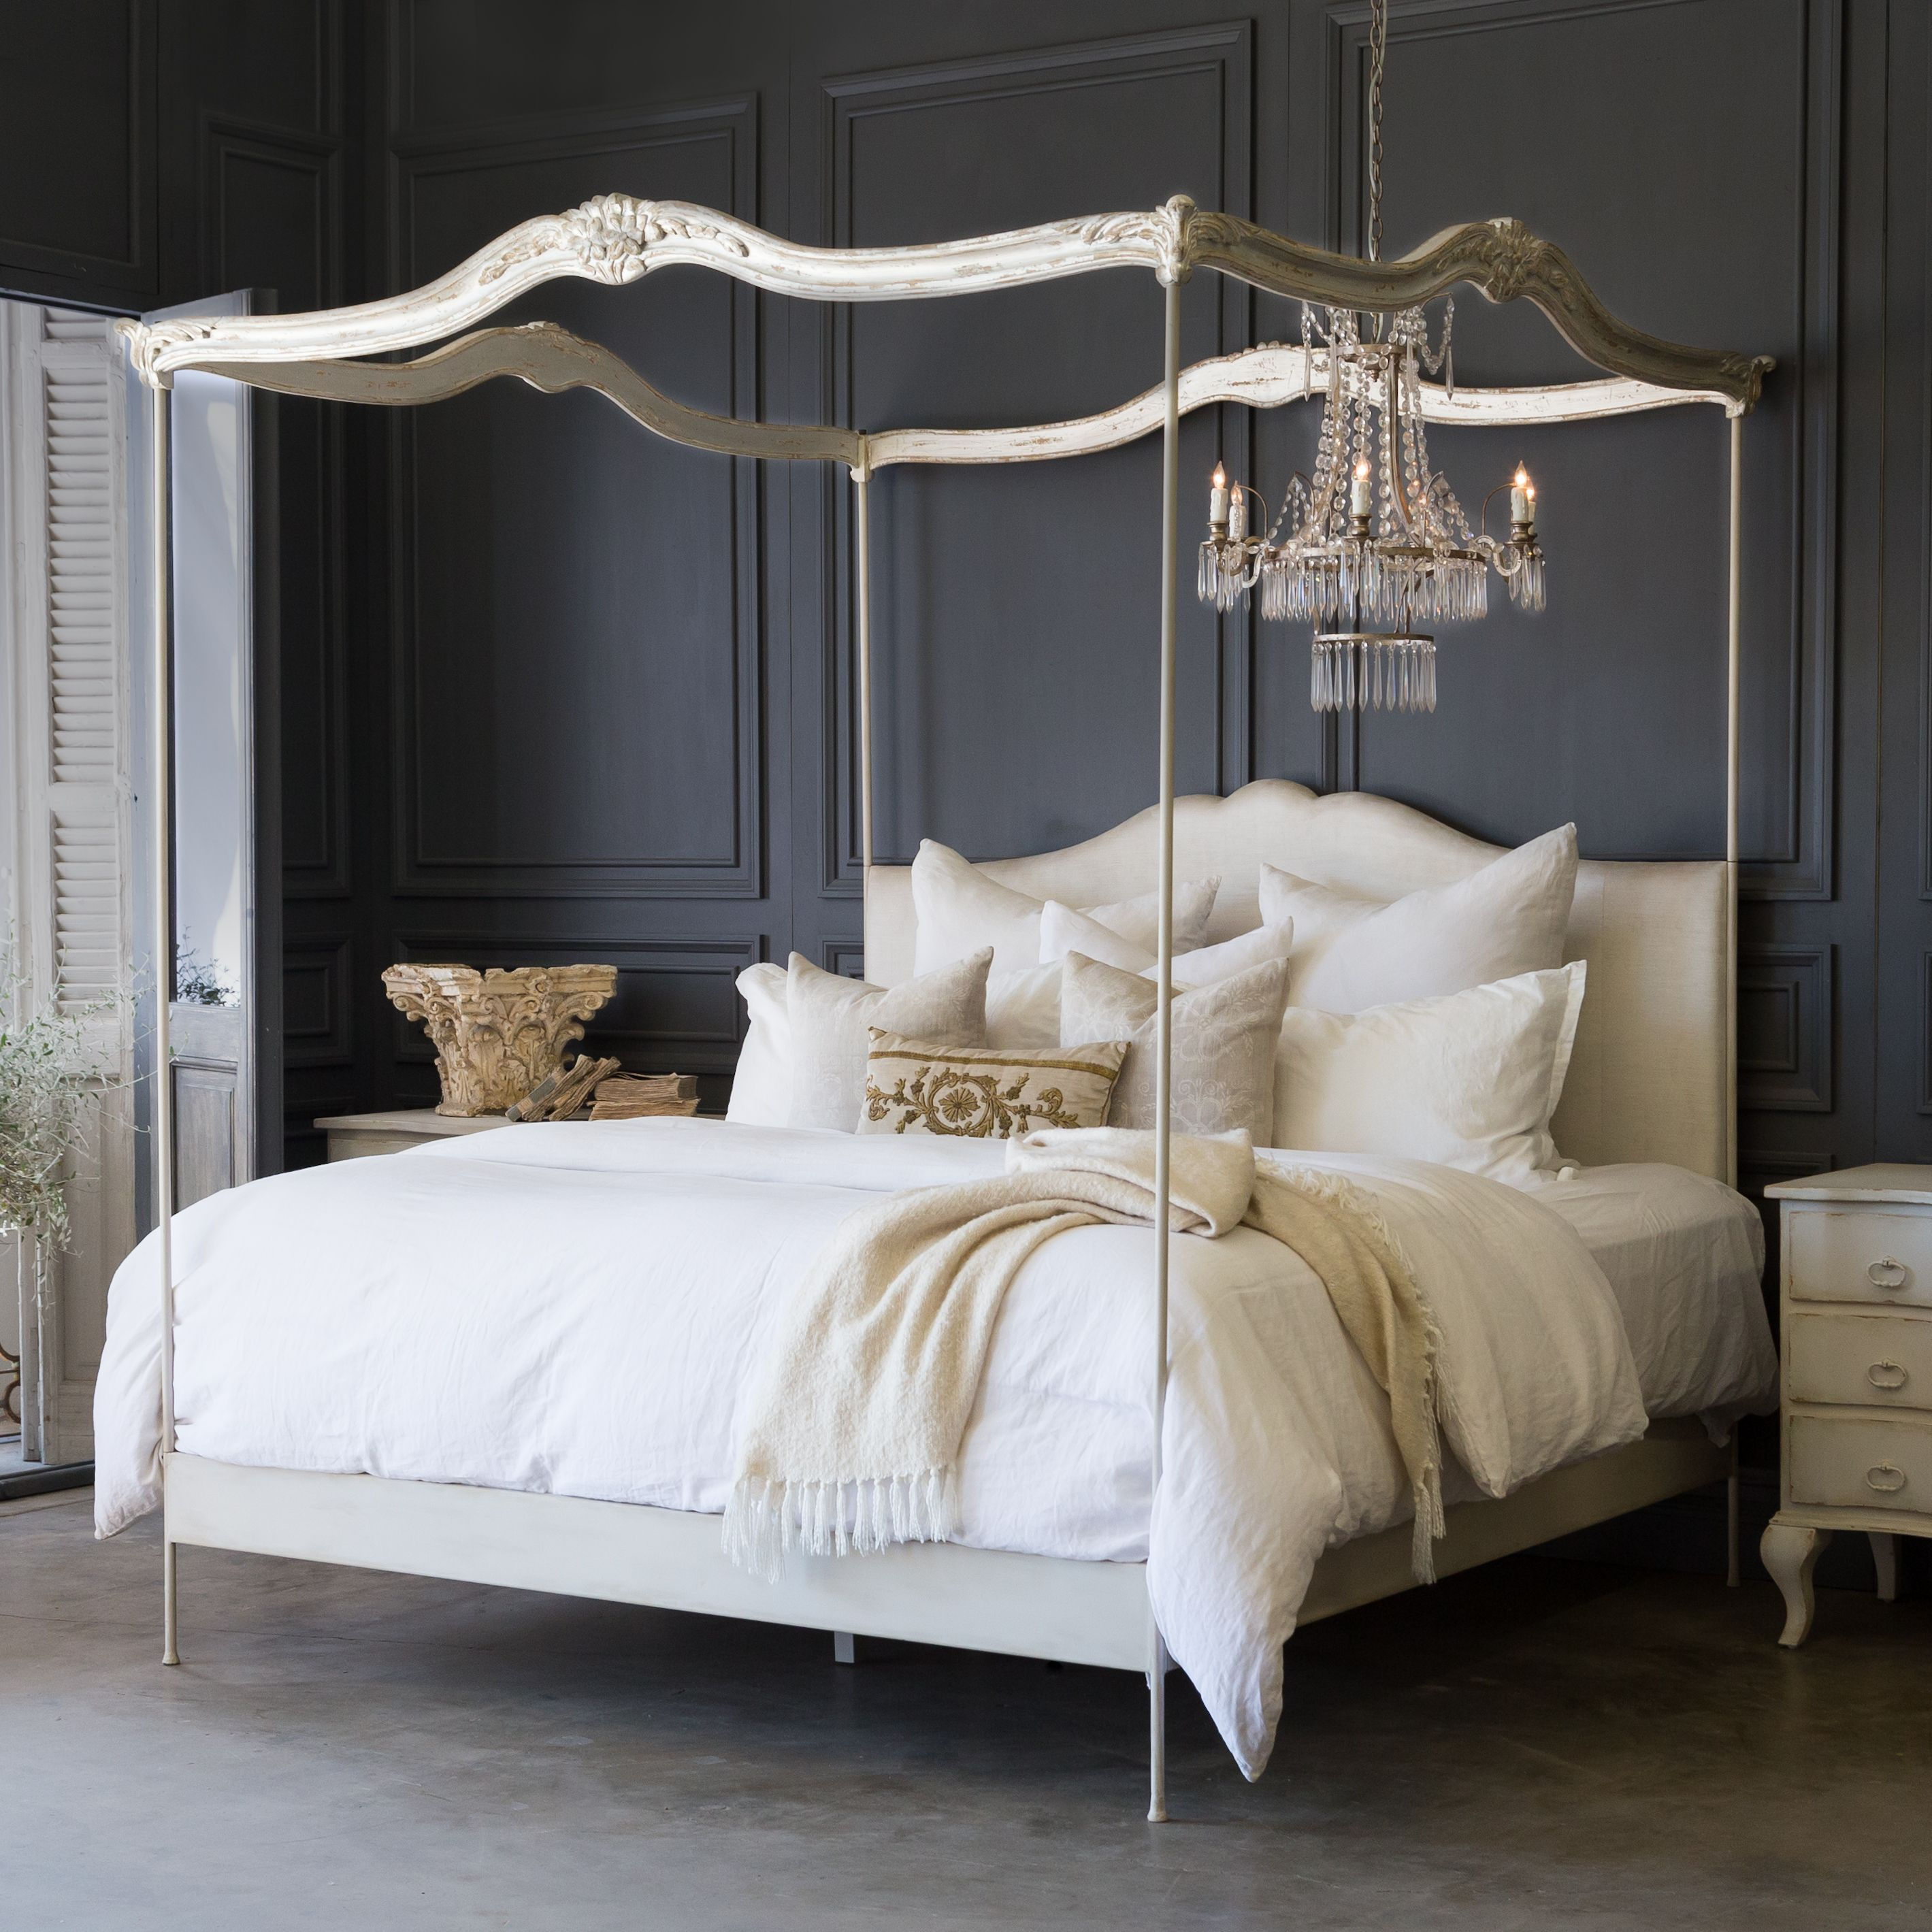 Eloquence Aria King Canopy Bed With Gracefully Delicate Posts Topped With Beautifully Carved Wood Hand